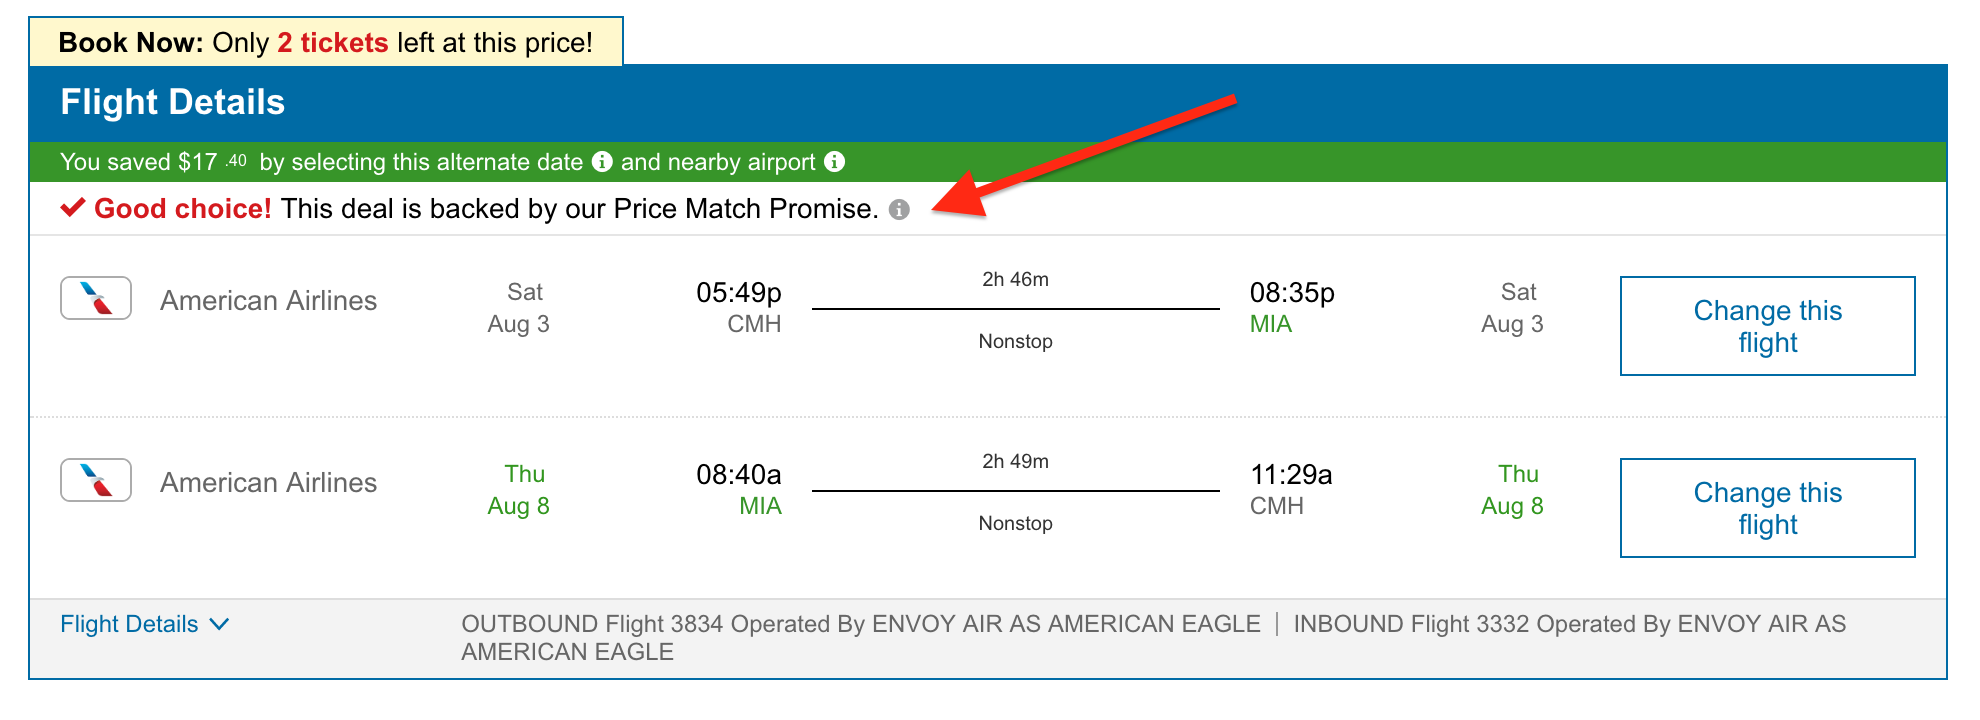 Priceline Trip Protection >> The Ultimate Guide To CheapOair - Will It Save You Money ...